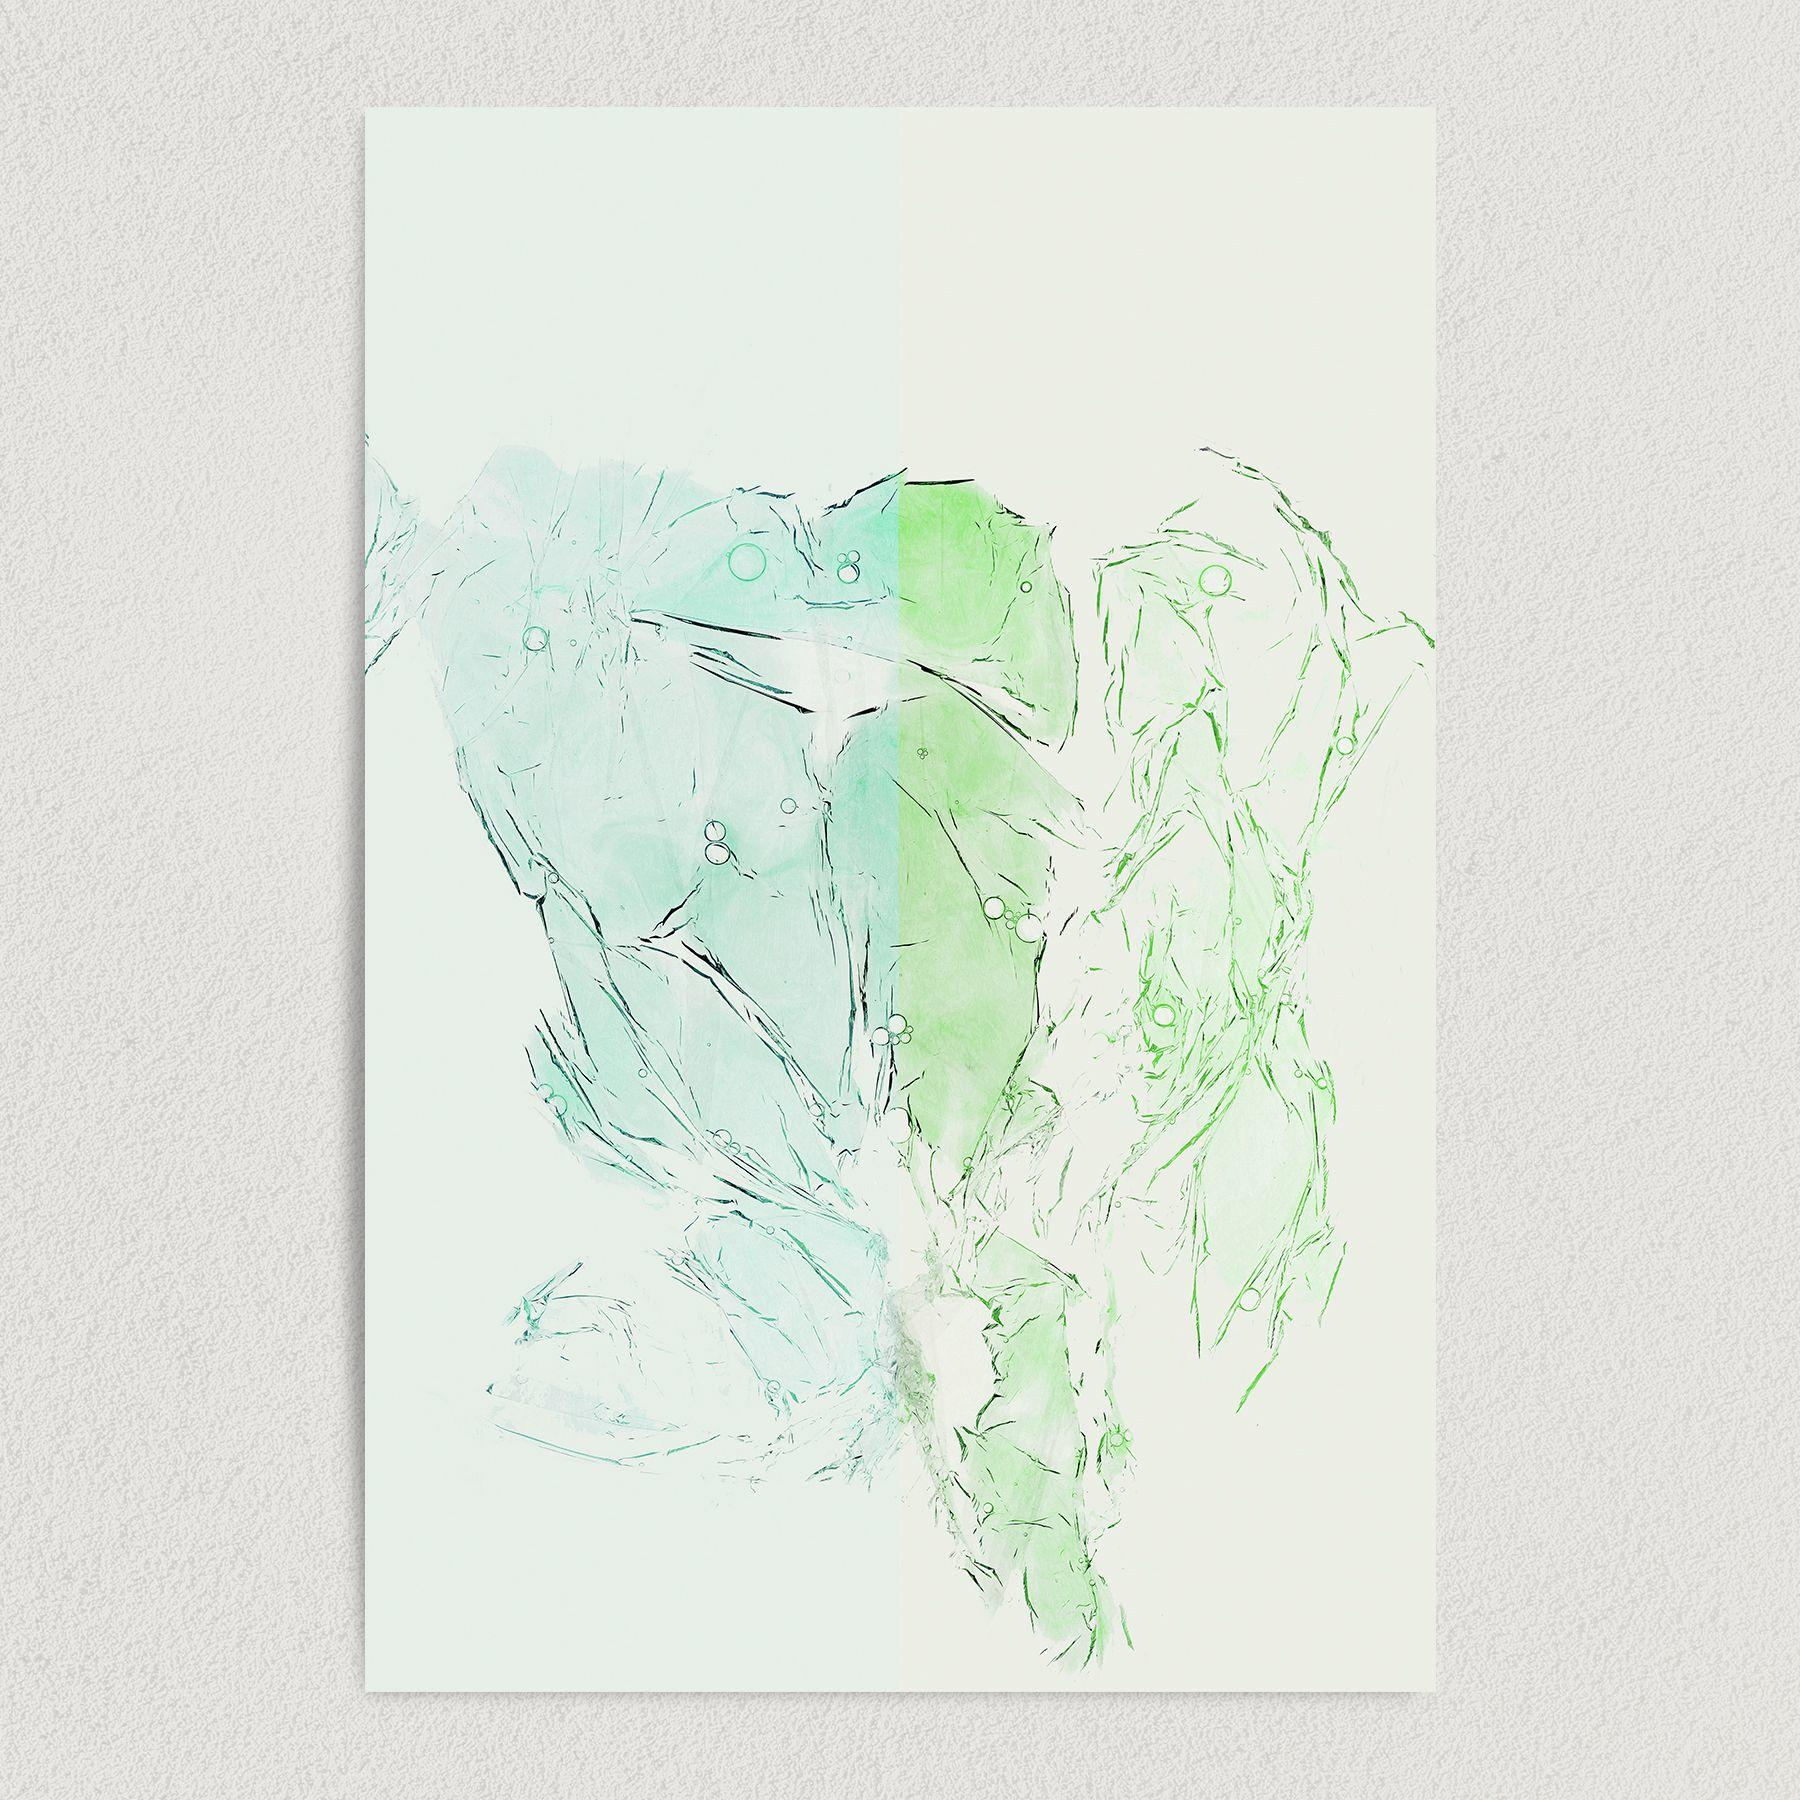 Abstract Blue and Green Glass Snow Object Art Print Poster A1008